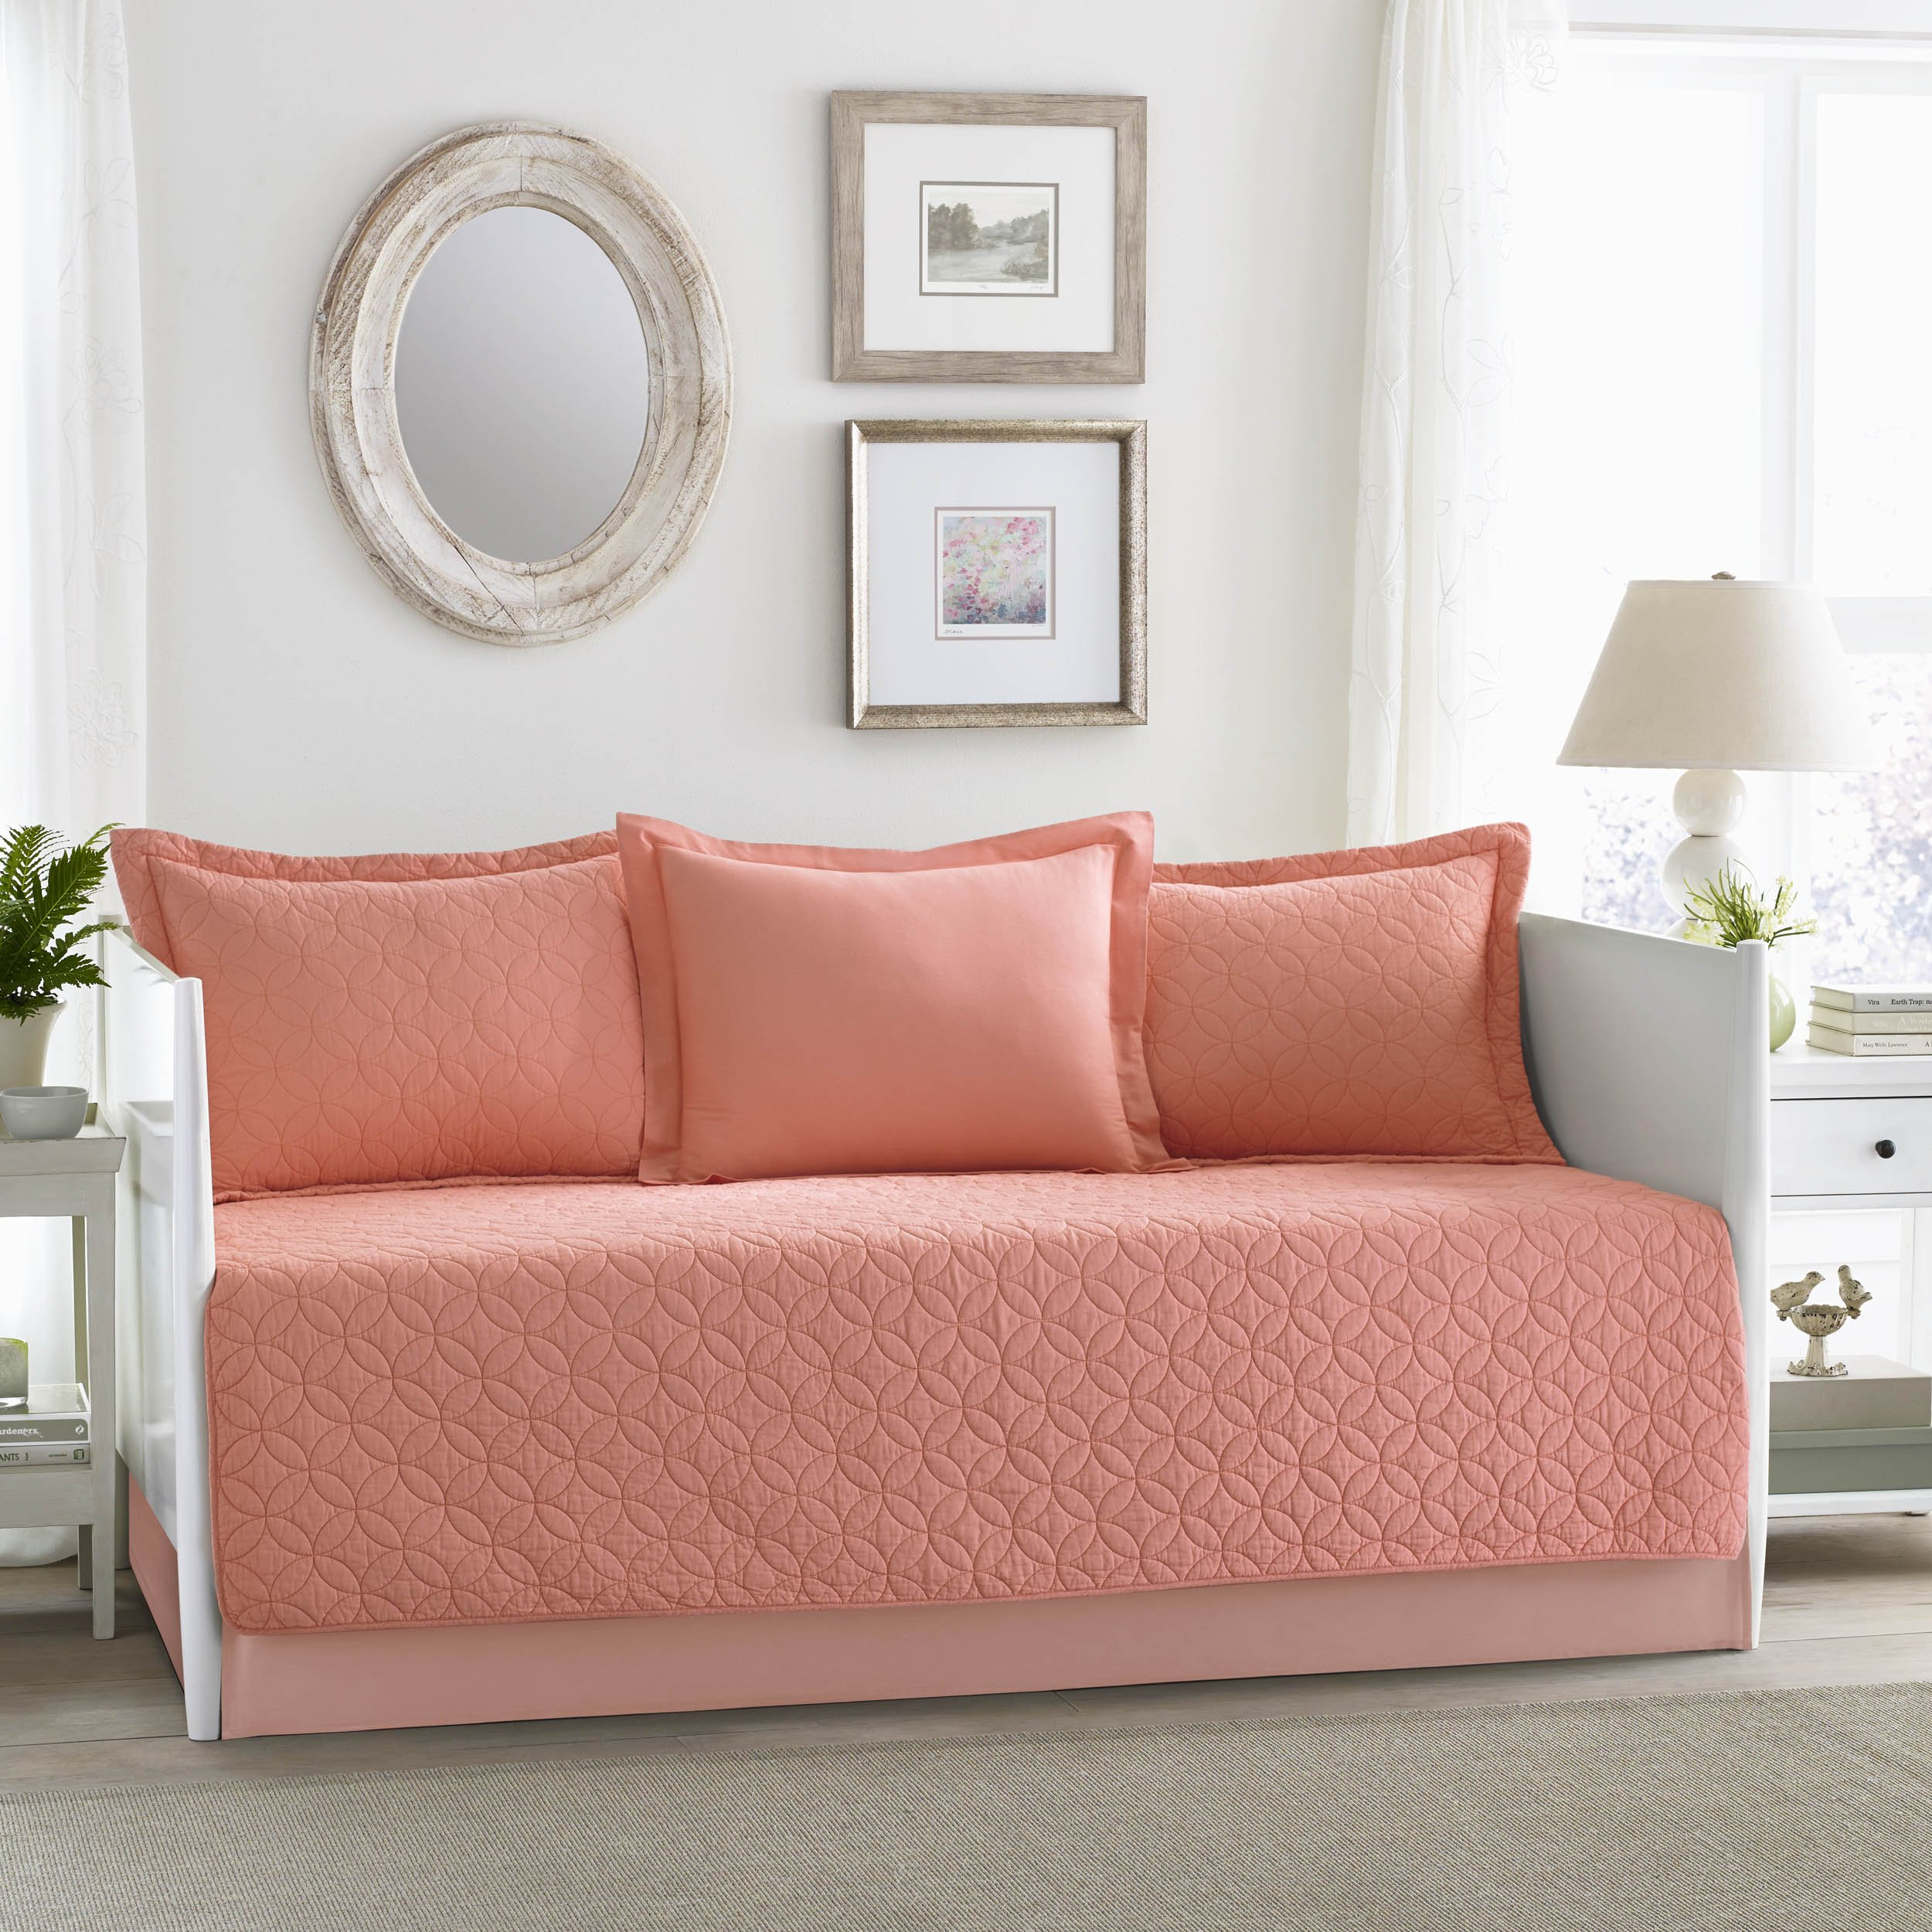 Laura Ashley USHSFK1029569 Solid Daybed Cover Set, Twin, Coral